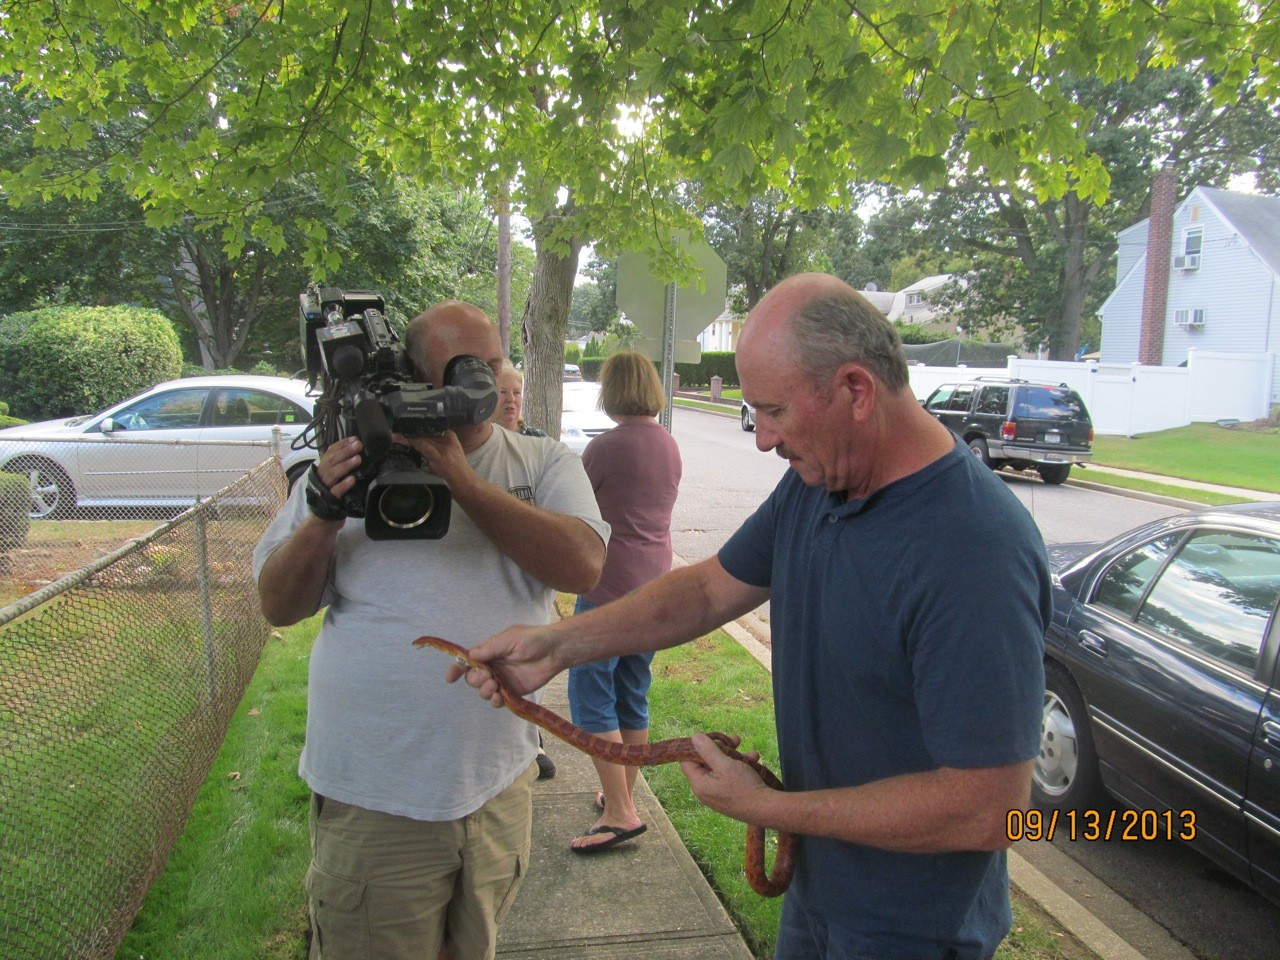 East Meadow resident Kevin Burke holds a corn snake that was found loose on the corner of Stuyvesant Avenue and York Street on Friday, Sept. 13. Before it could be trapped, a car accidentally ran over and killed the snake.